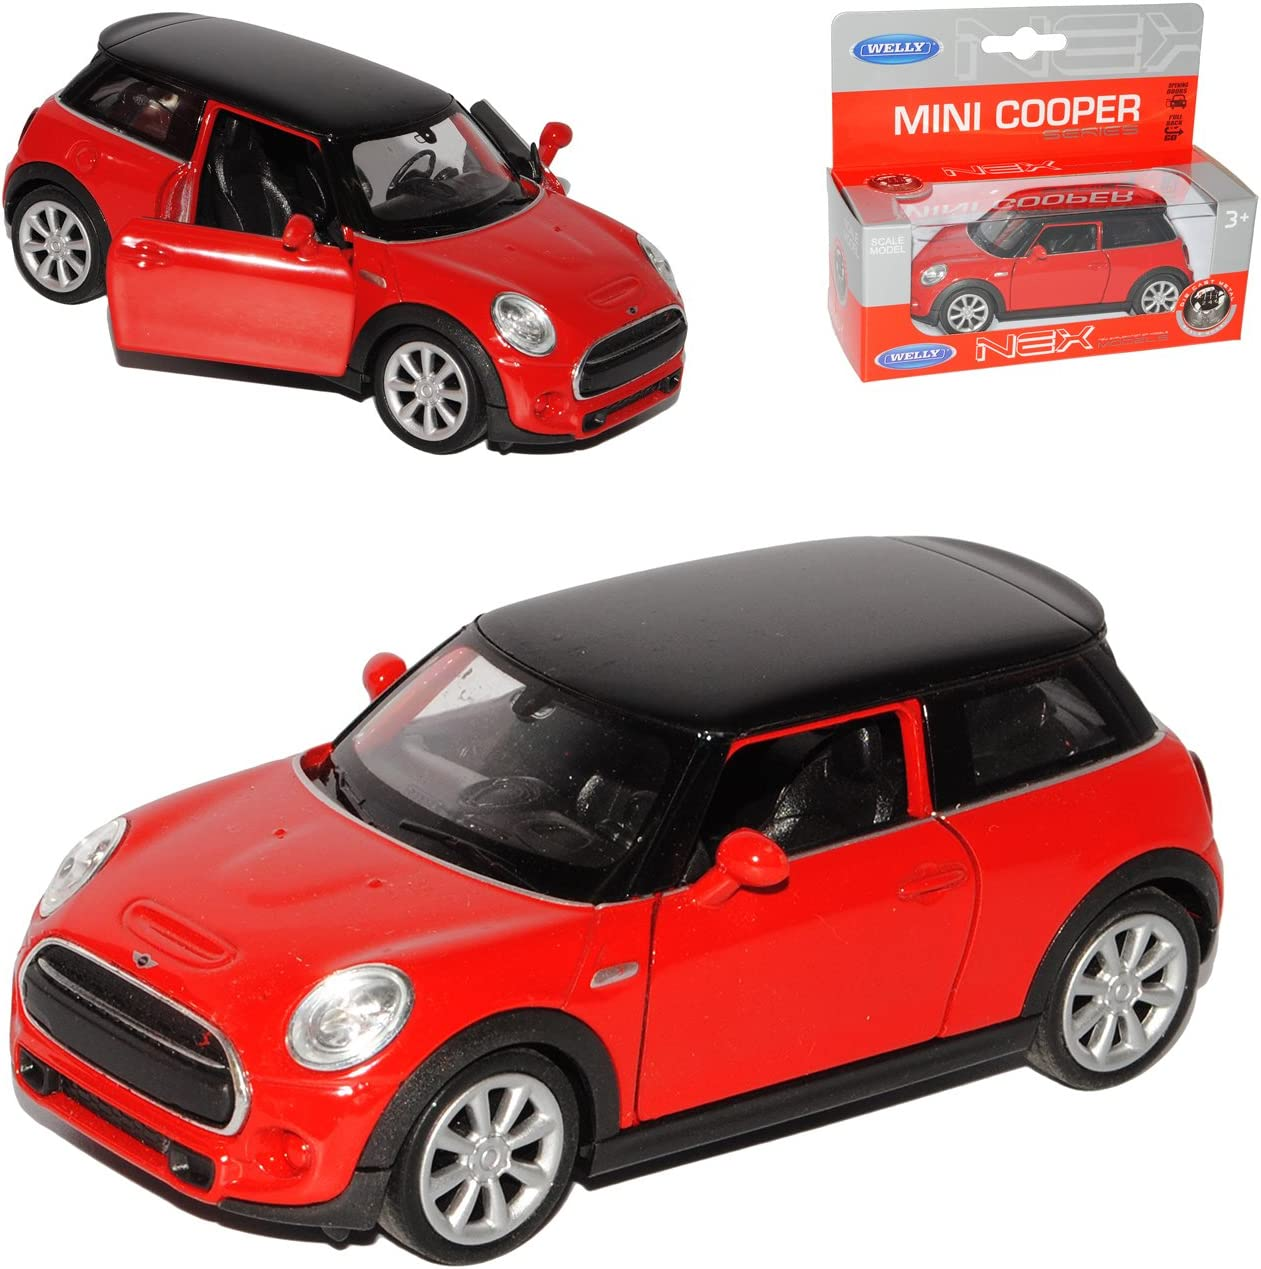 Mini Cooper S F56 New Hatch 3 Türer Rot Ab 2014 1//24 Welly Modell Auto mit ode..